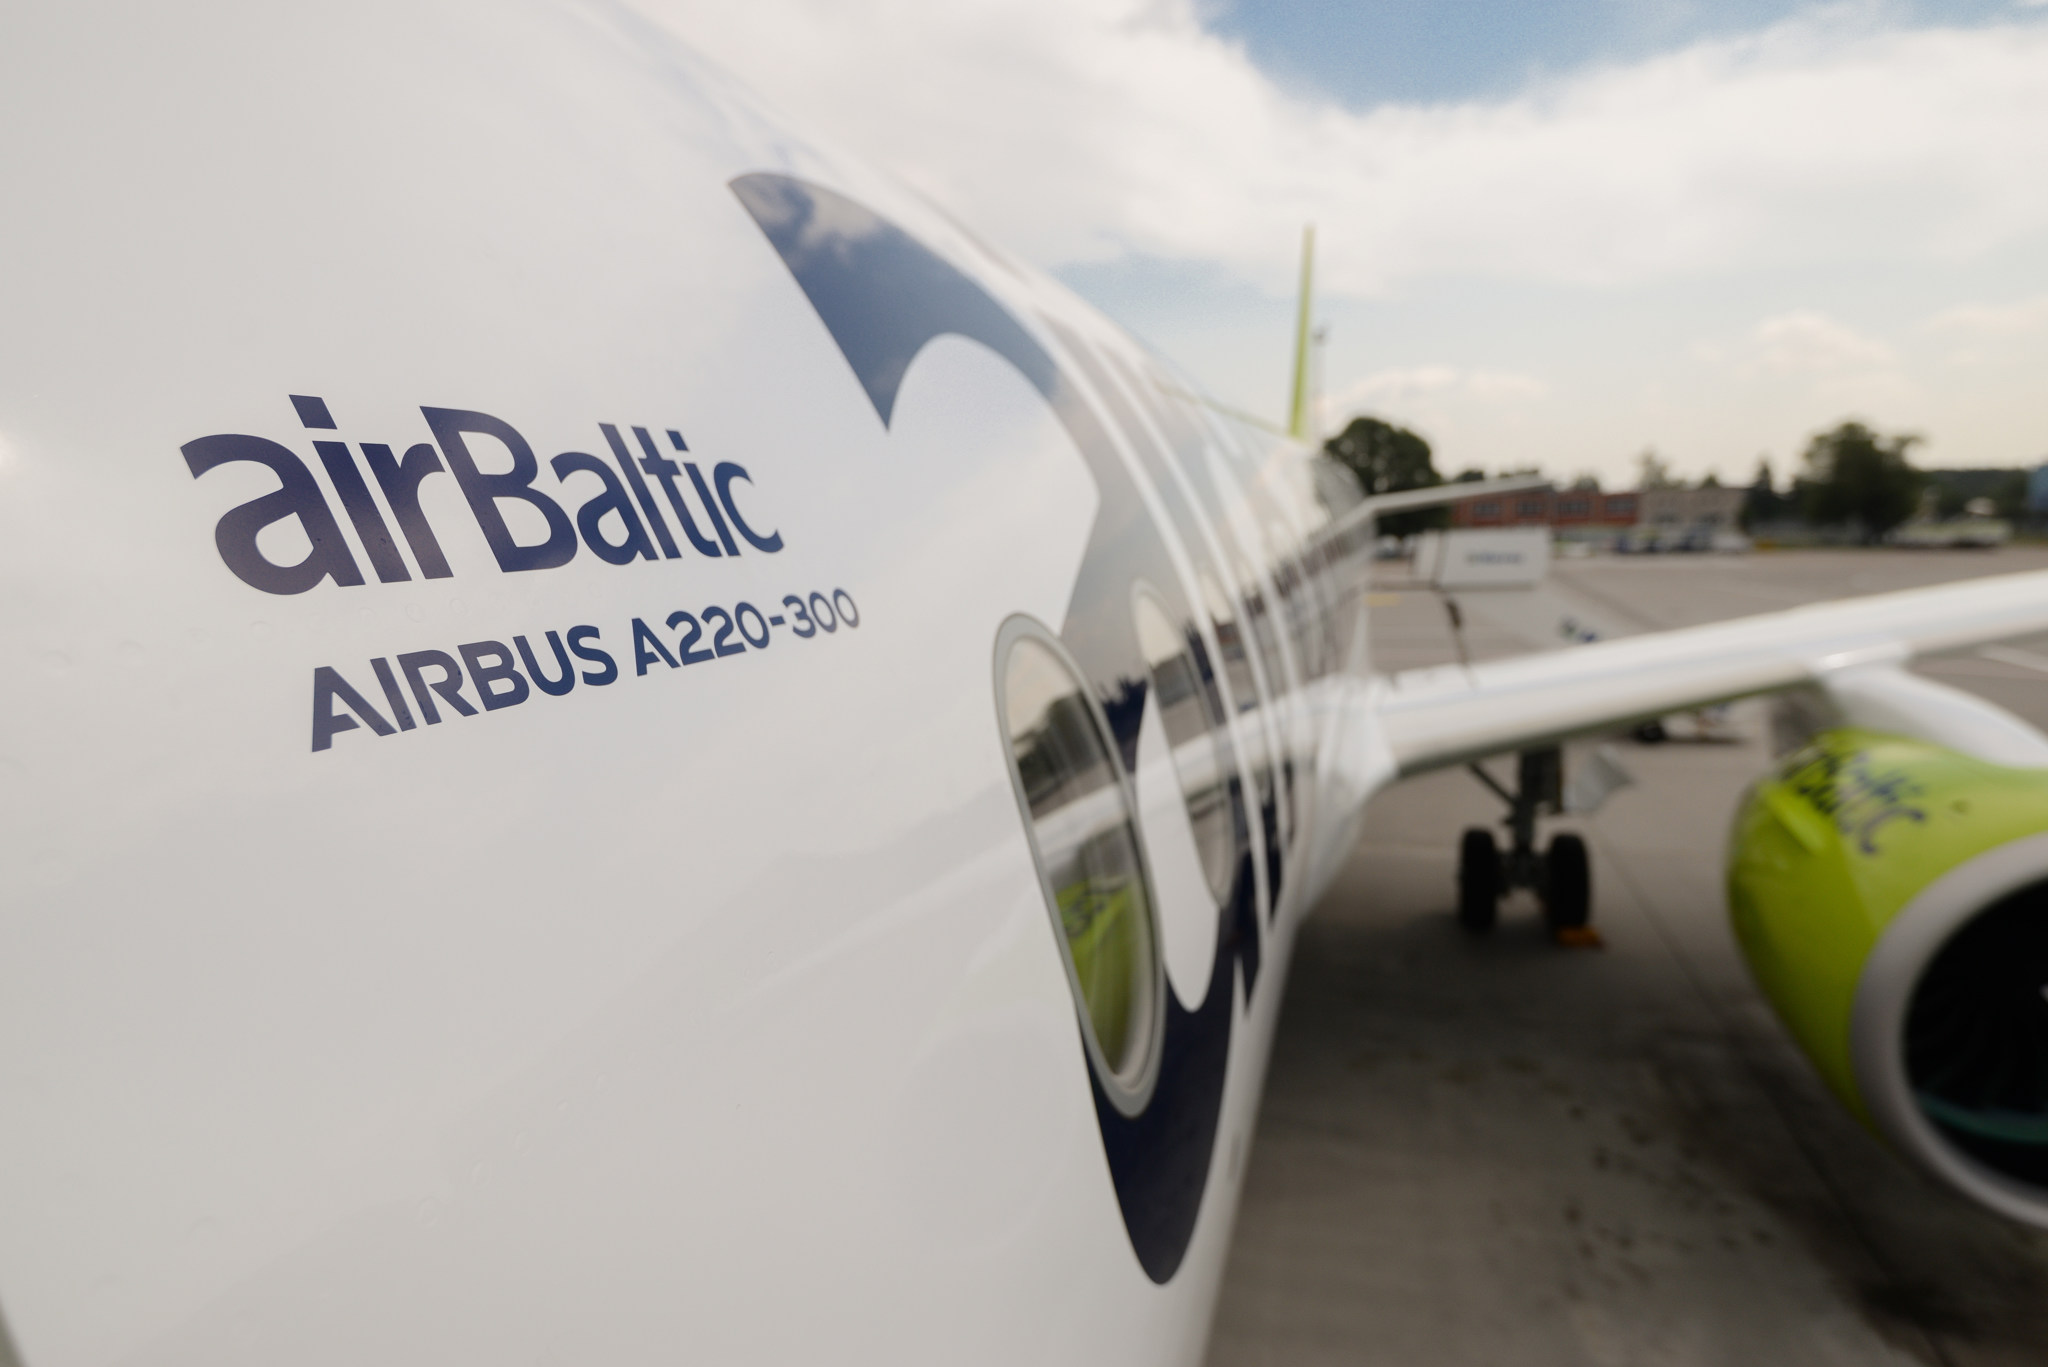 airBaltic A220 300 10TH 5